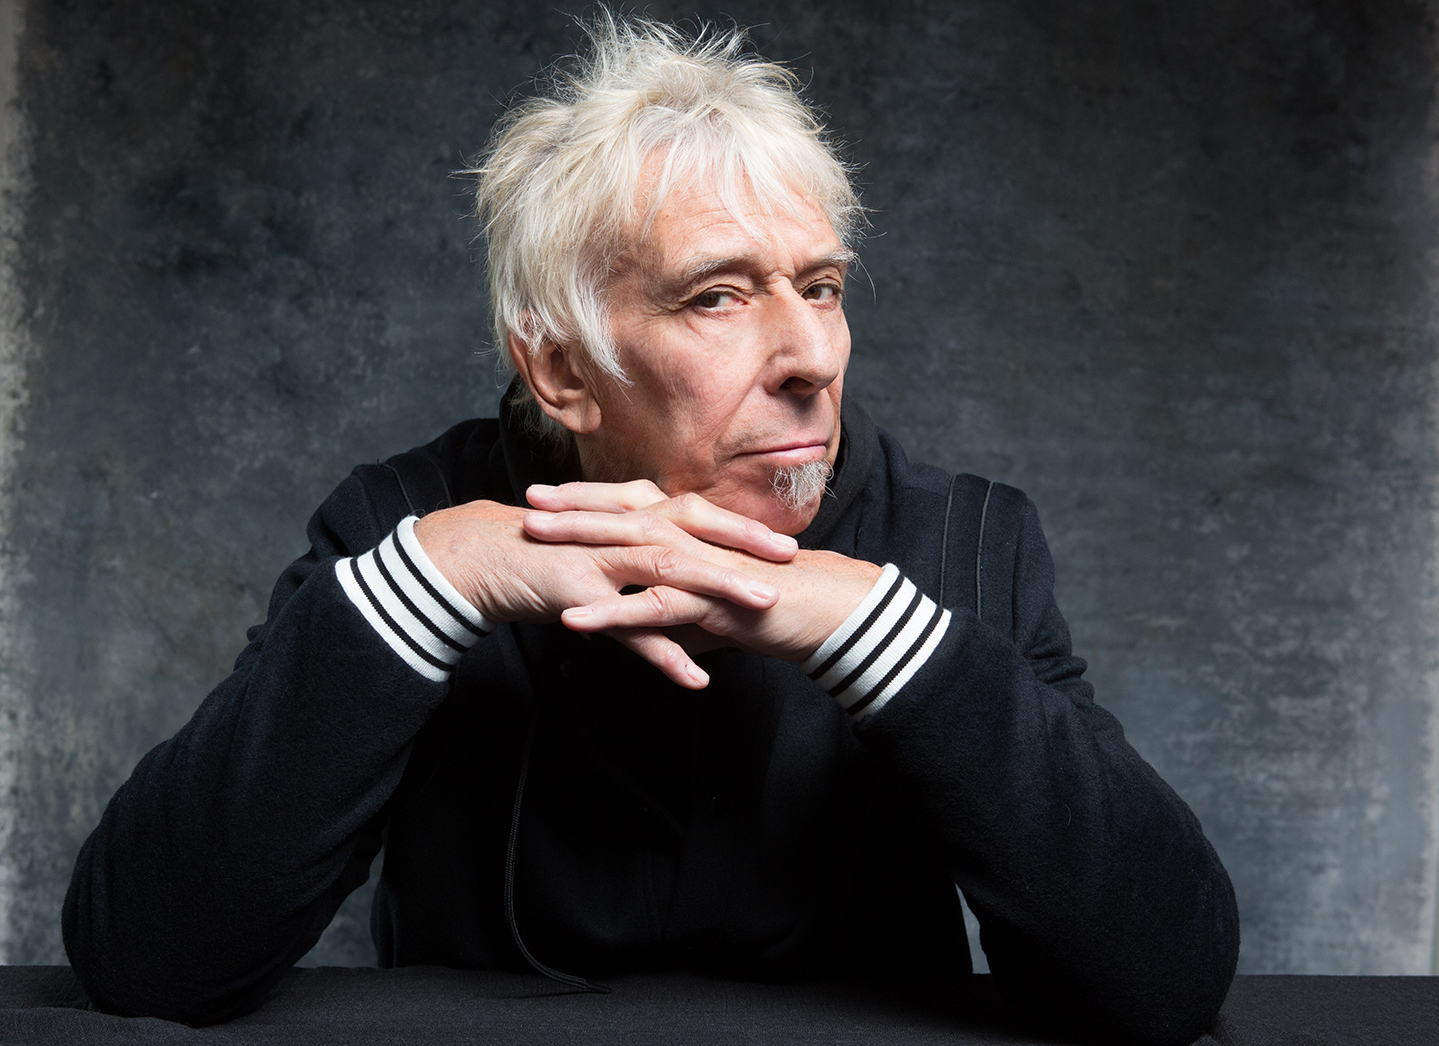 Nublu / Foto: John Cale for The Creative Independent